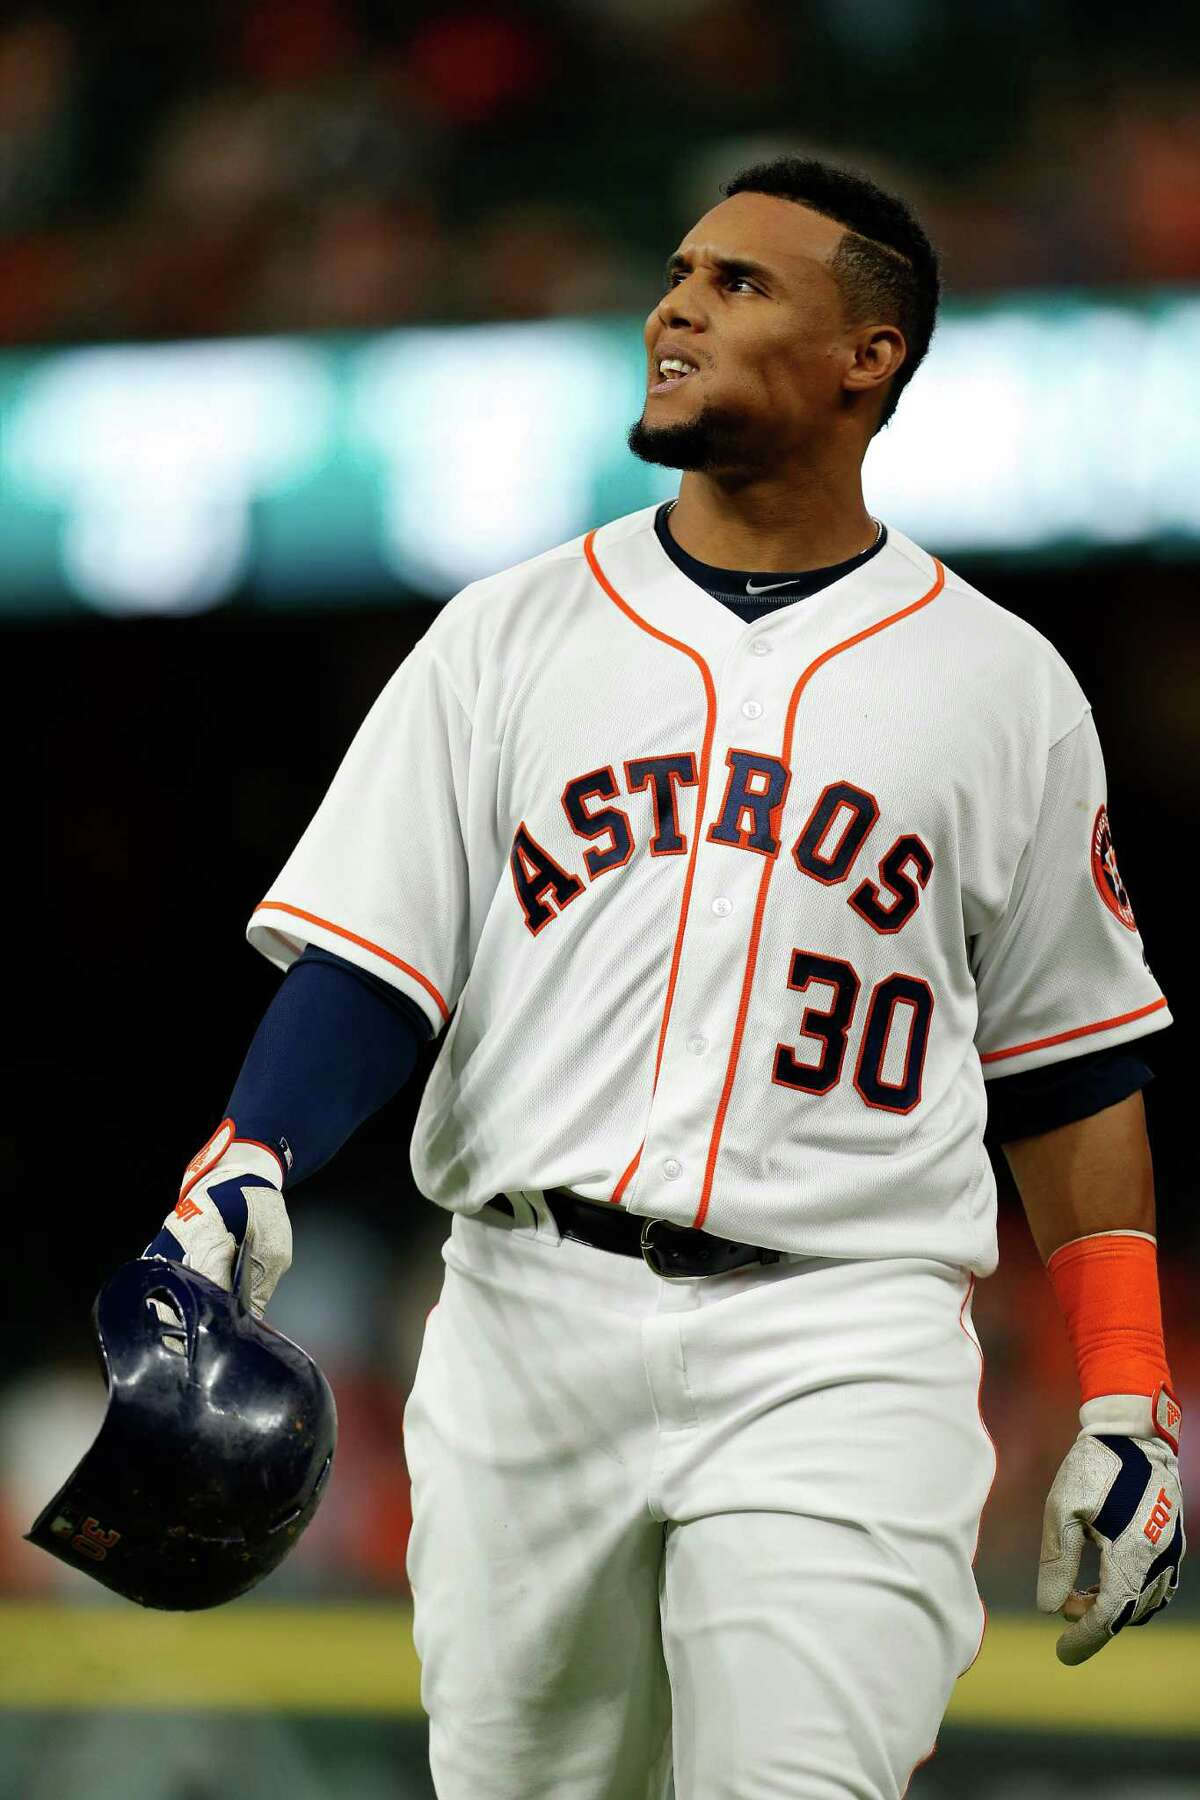 Reason to panic: Carlos Gomez The flamboyant center fielder acquired from Milwaukee last July has been mostly underwhelming as an Astro, hitting .228 with all of four homers, none this season. He's hitting .200 this year with 21 strikeouts in 77 at-bats entering Wednesday, but keeps getting sent out there every day. That might need to change in favor of someone more productive.